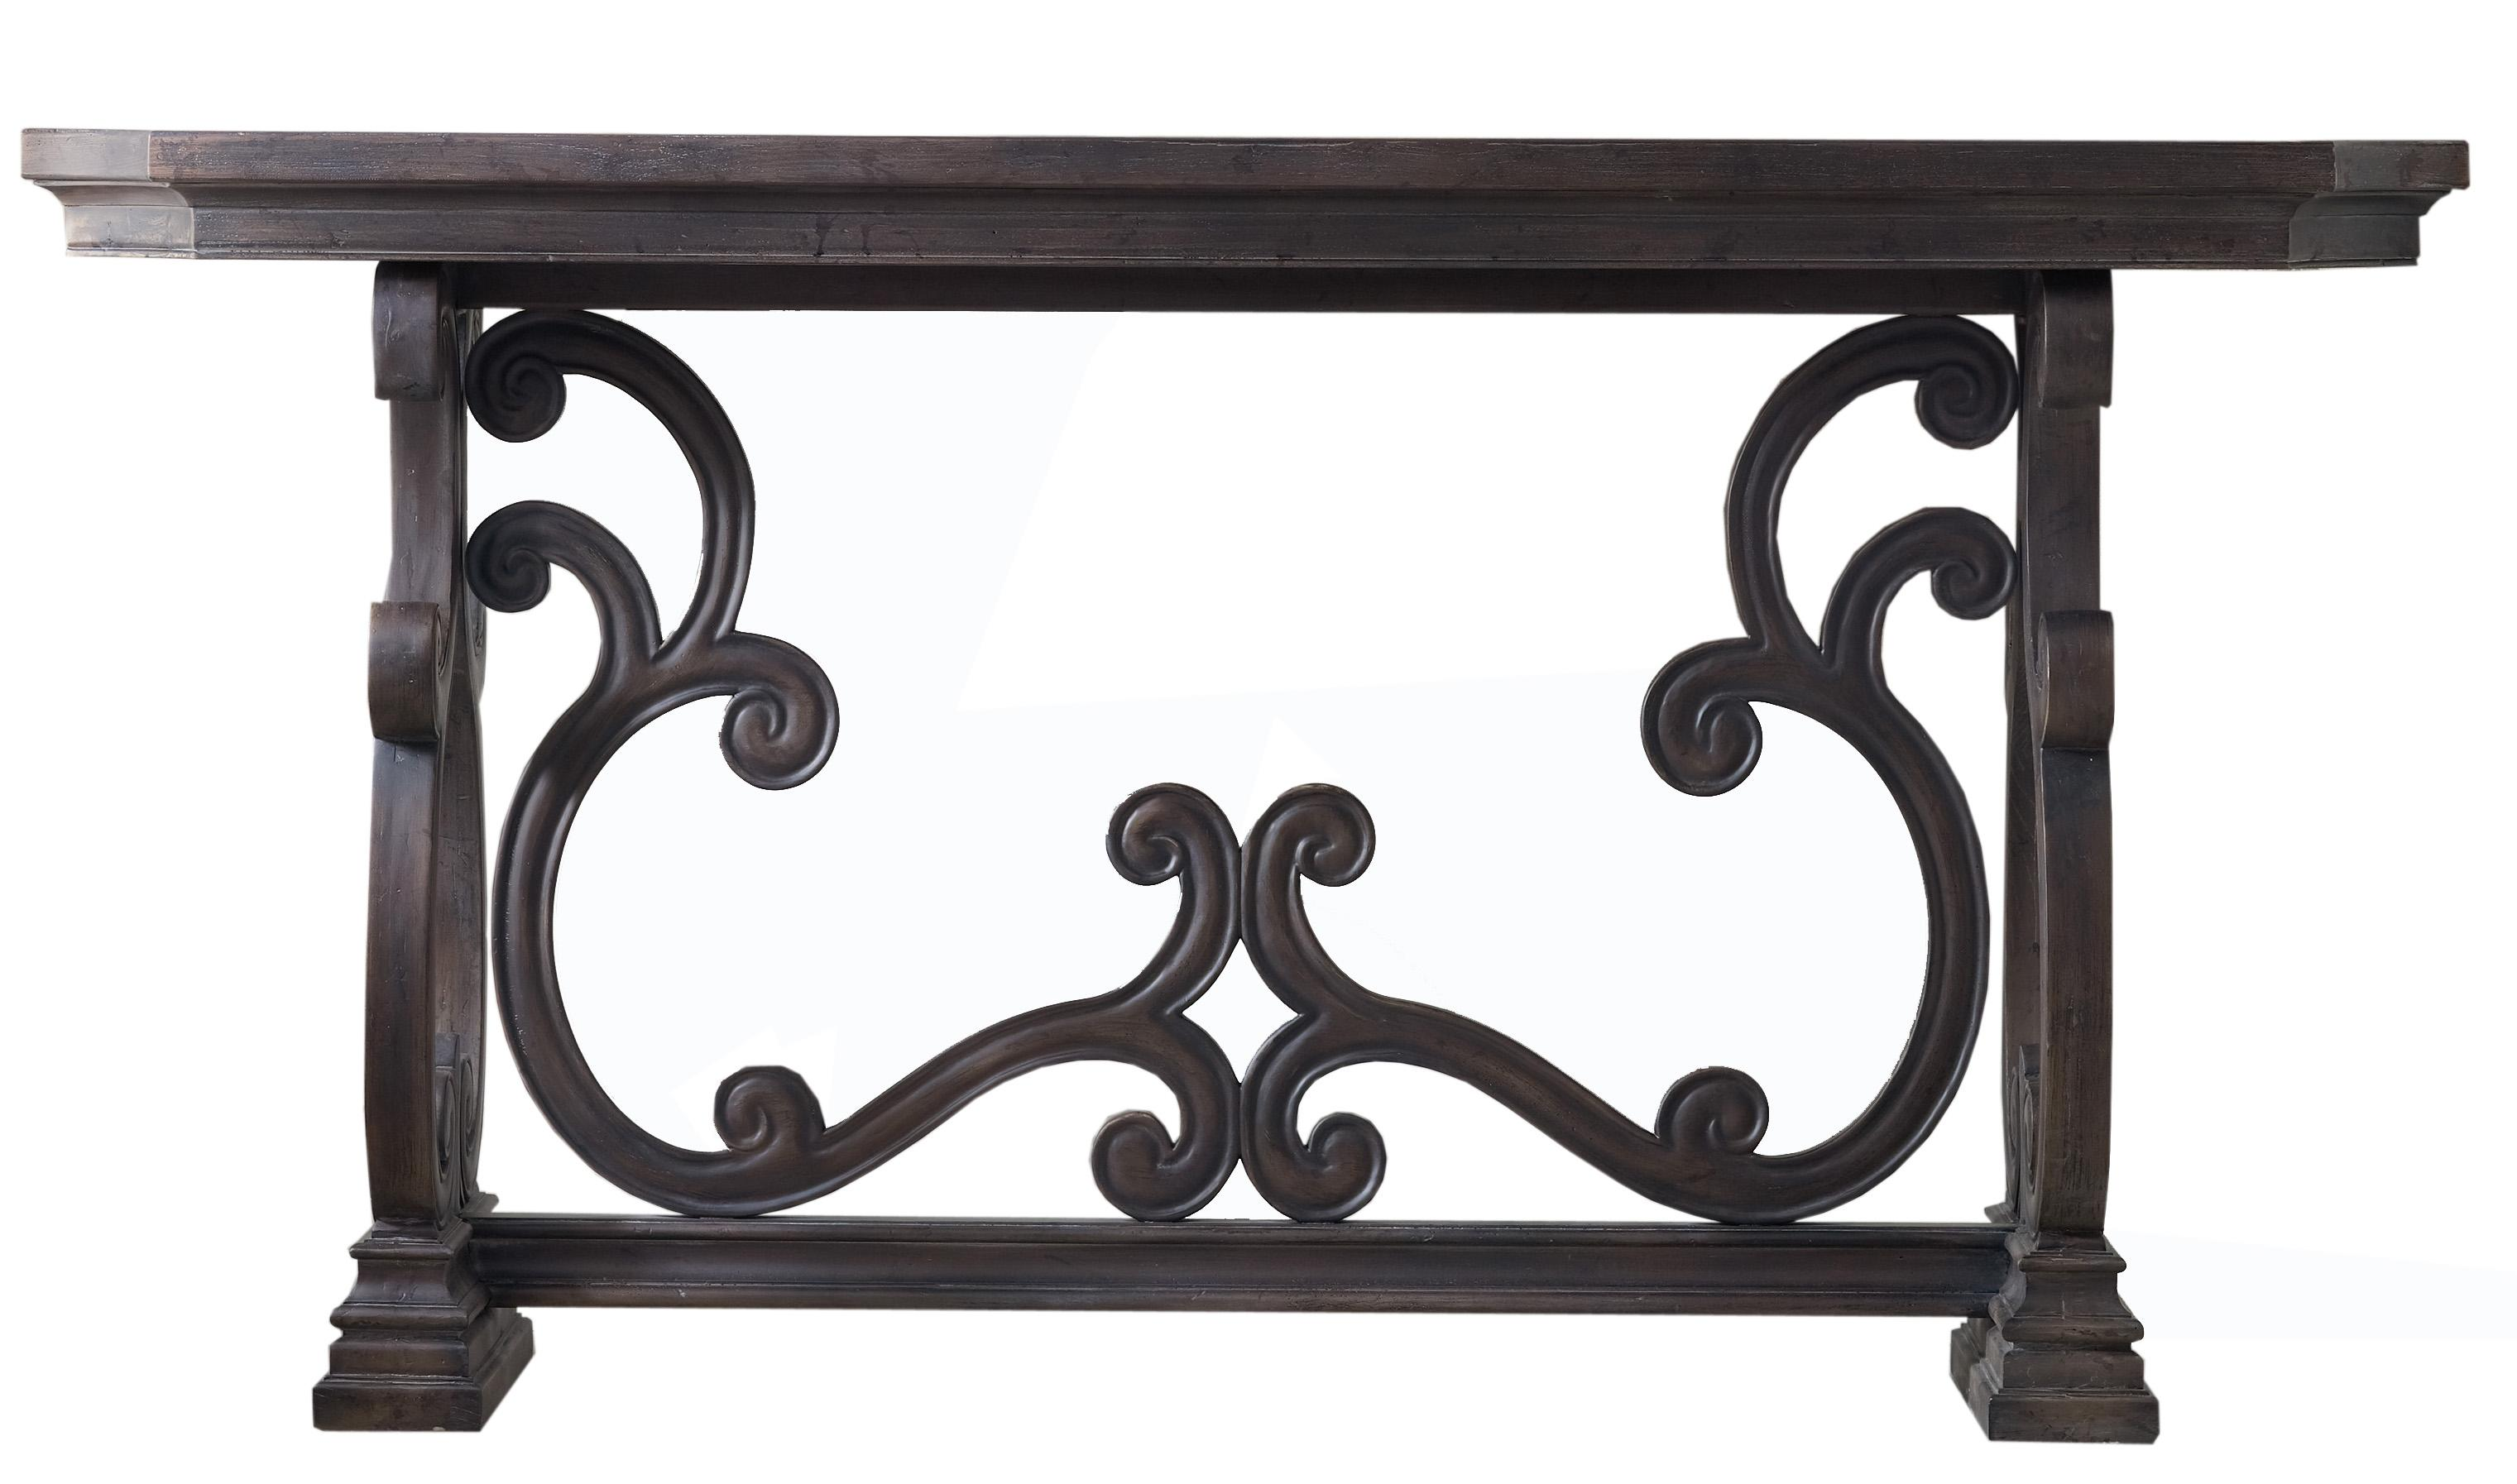 Hamilton Home Living Room Accents Da Valle Scroll Console - Item Number: 5165-85001